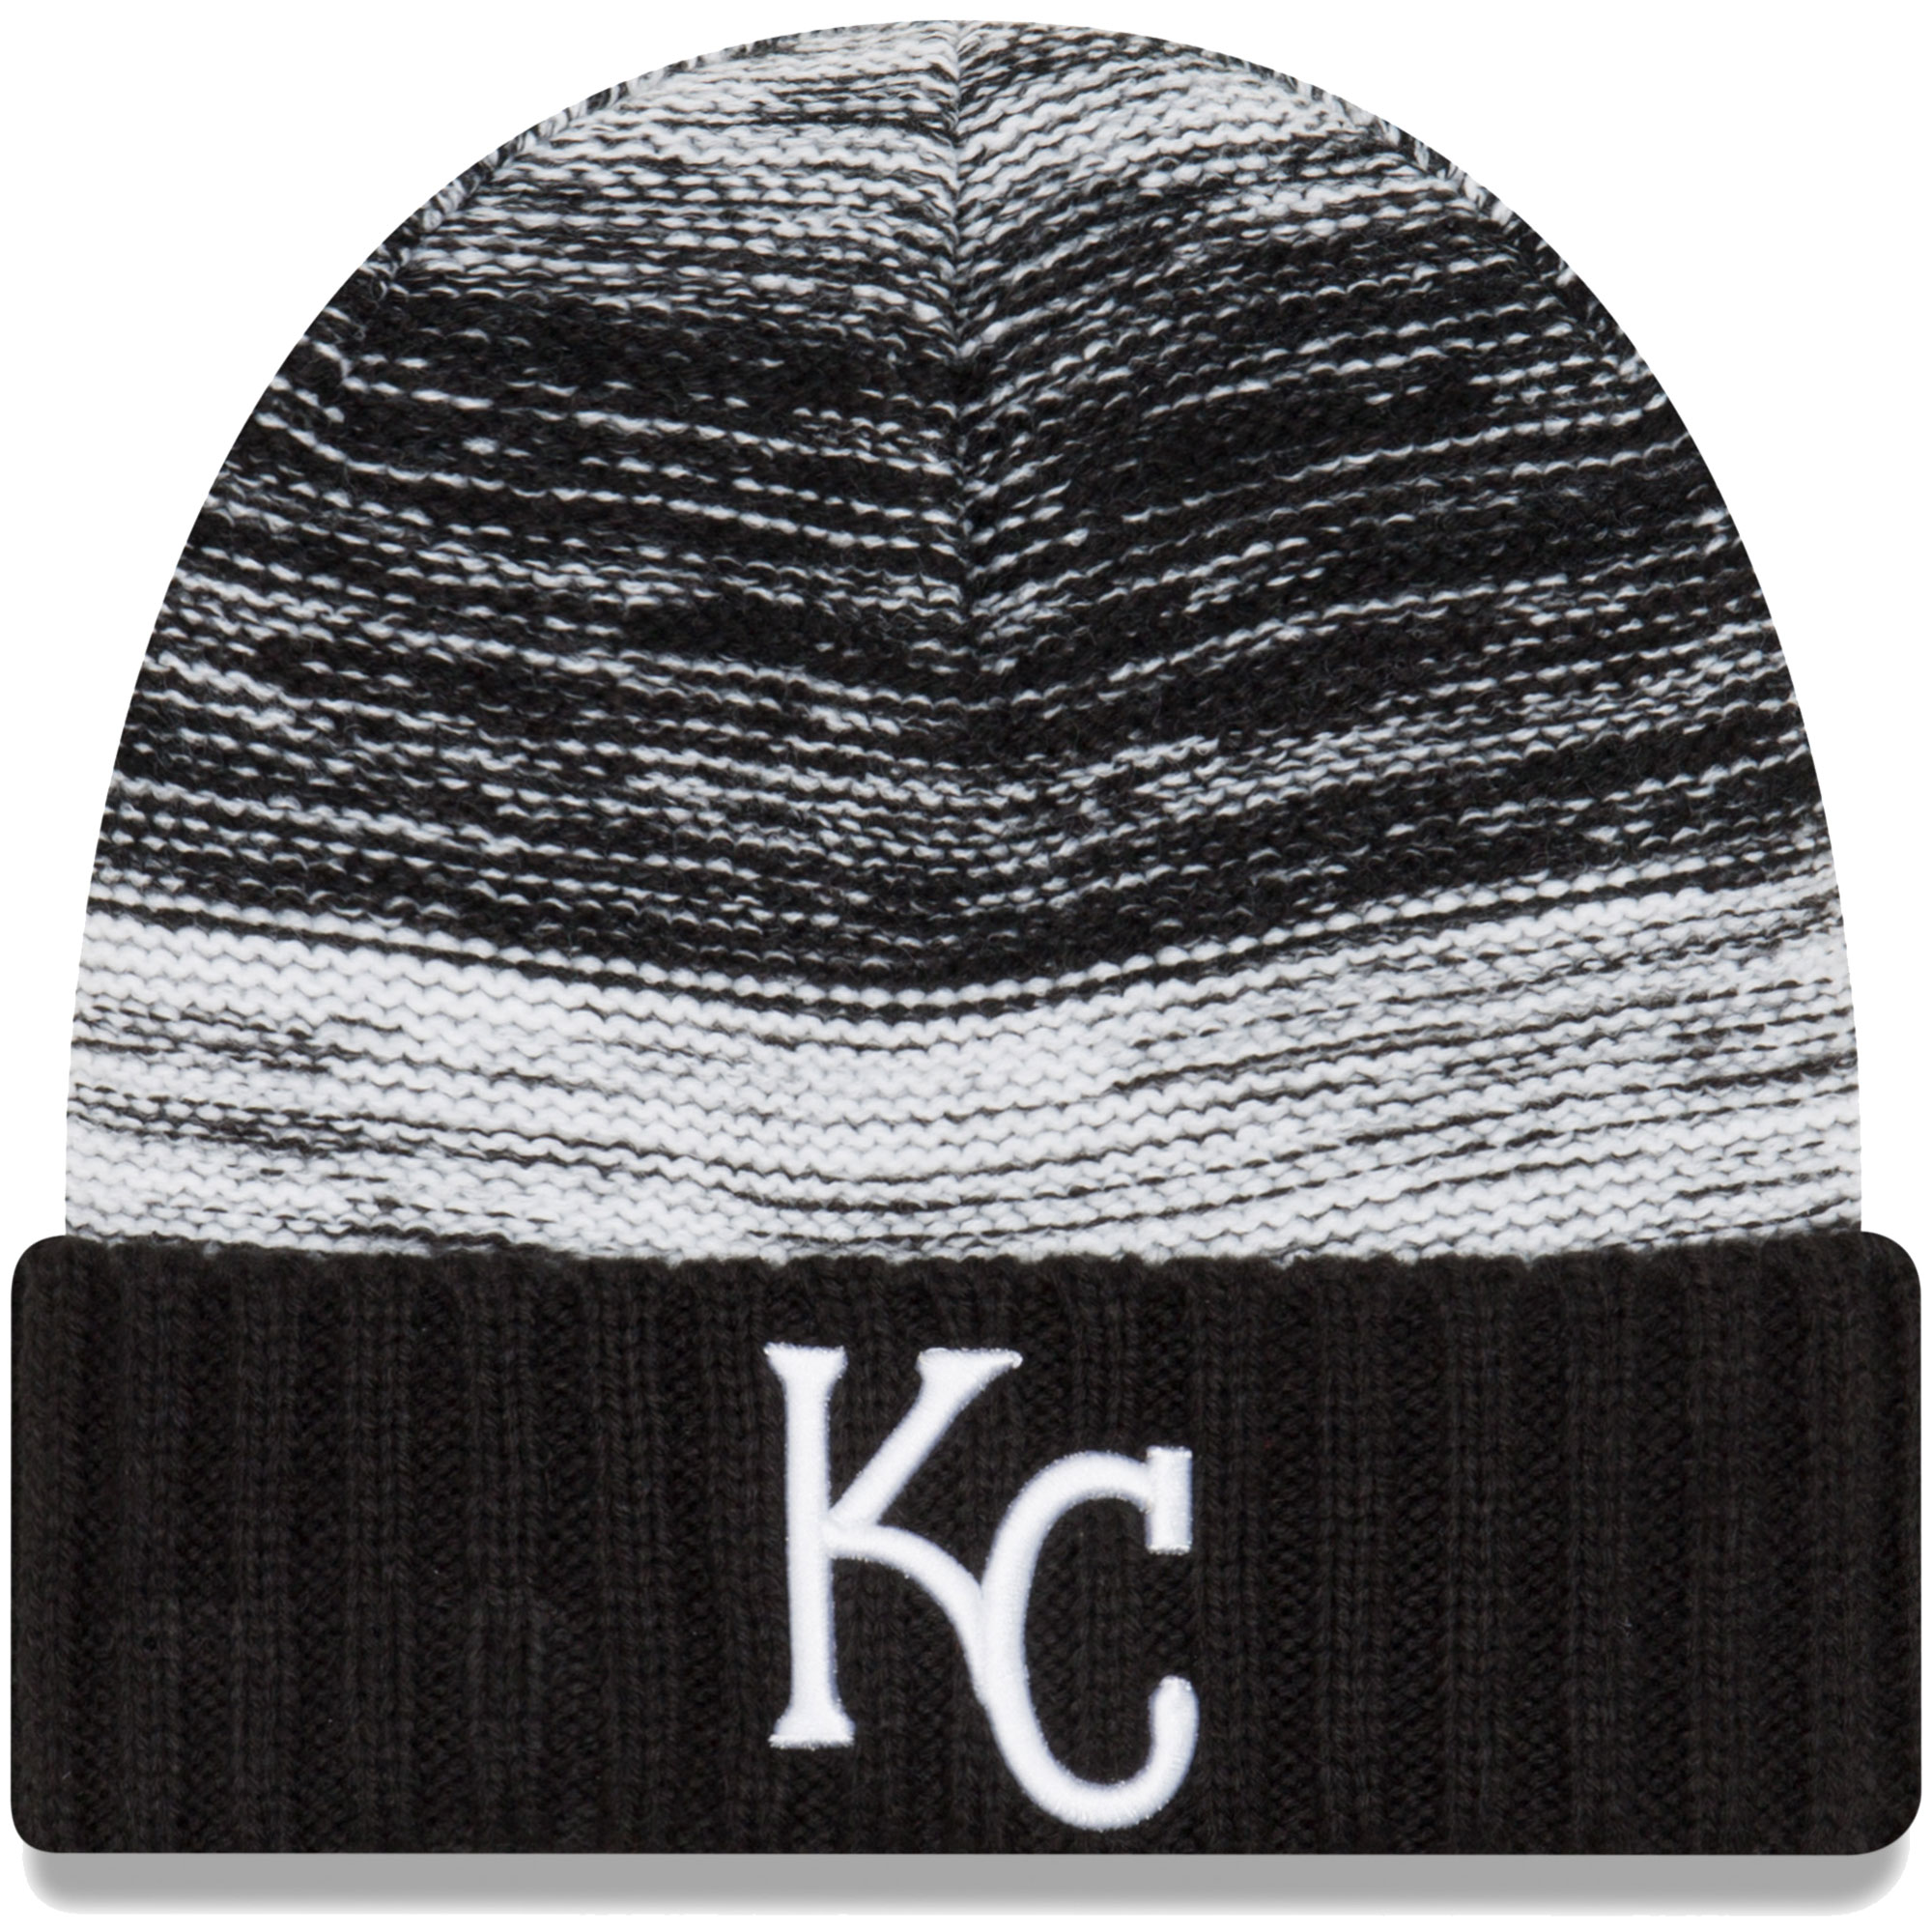 Kansas City Royals New Era Team Snug Cuffed Knit Hat - Black/White - OSFA